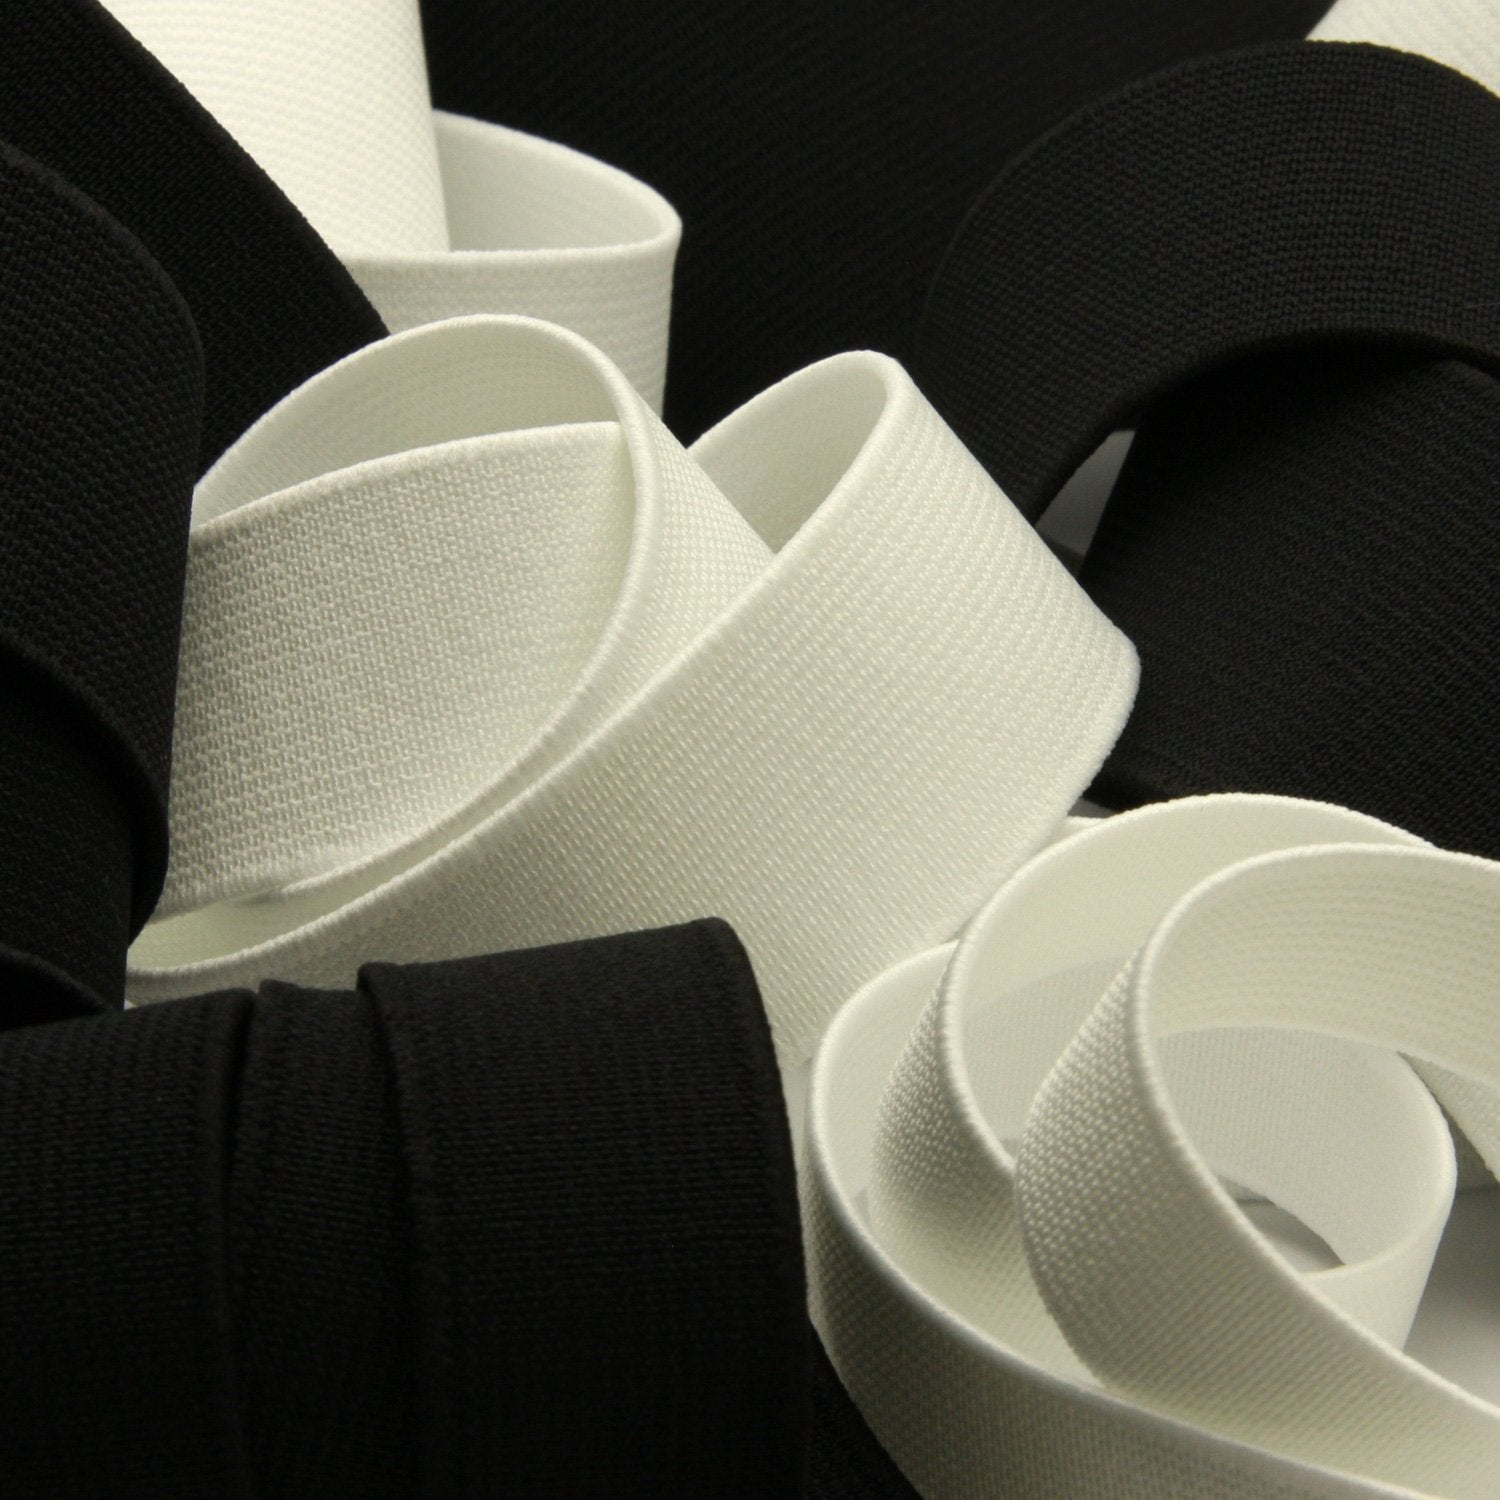 FUJIYAMA RIBBON [Wholesale] Soft Type Inside Belt 20mm 30 Meters Roll Off White